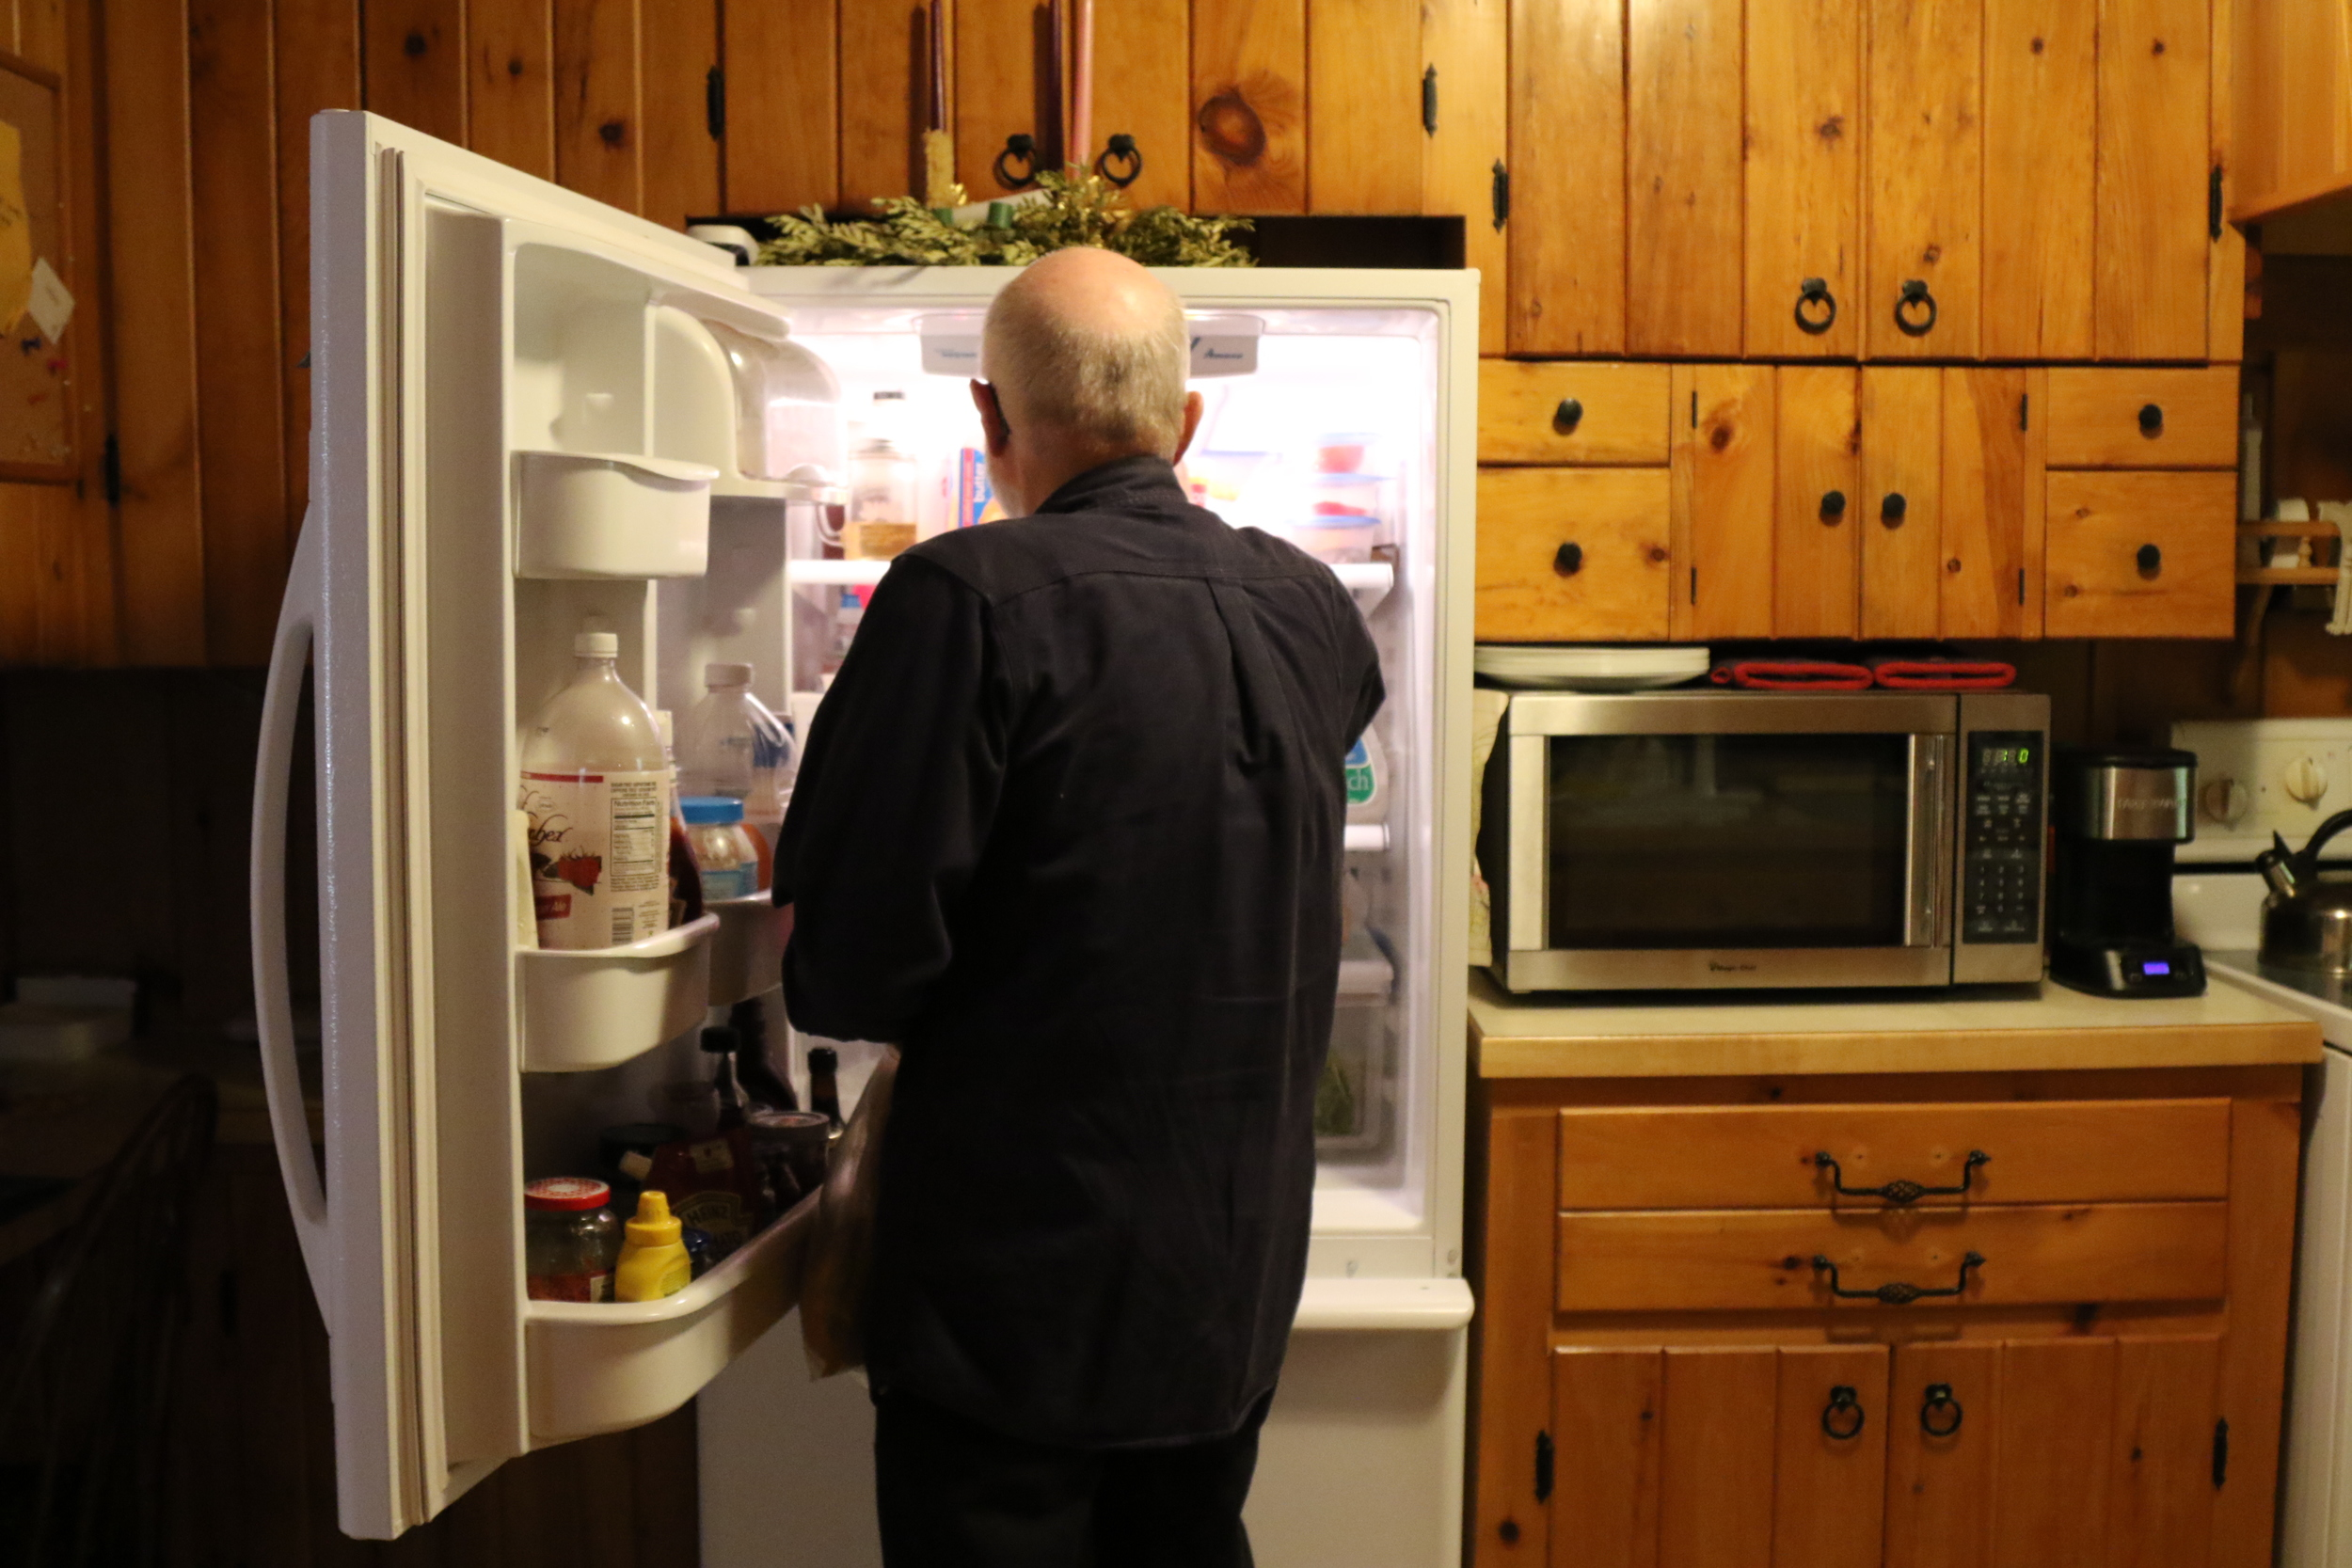 George is seen getting food out of the refrigerator in his home in Mansfield, Connecticut before making lunch for Ann. (Jackson Mitchell)